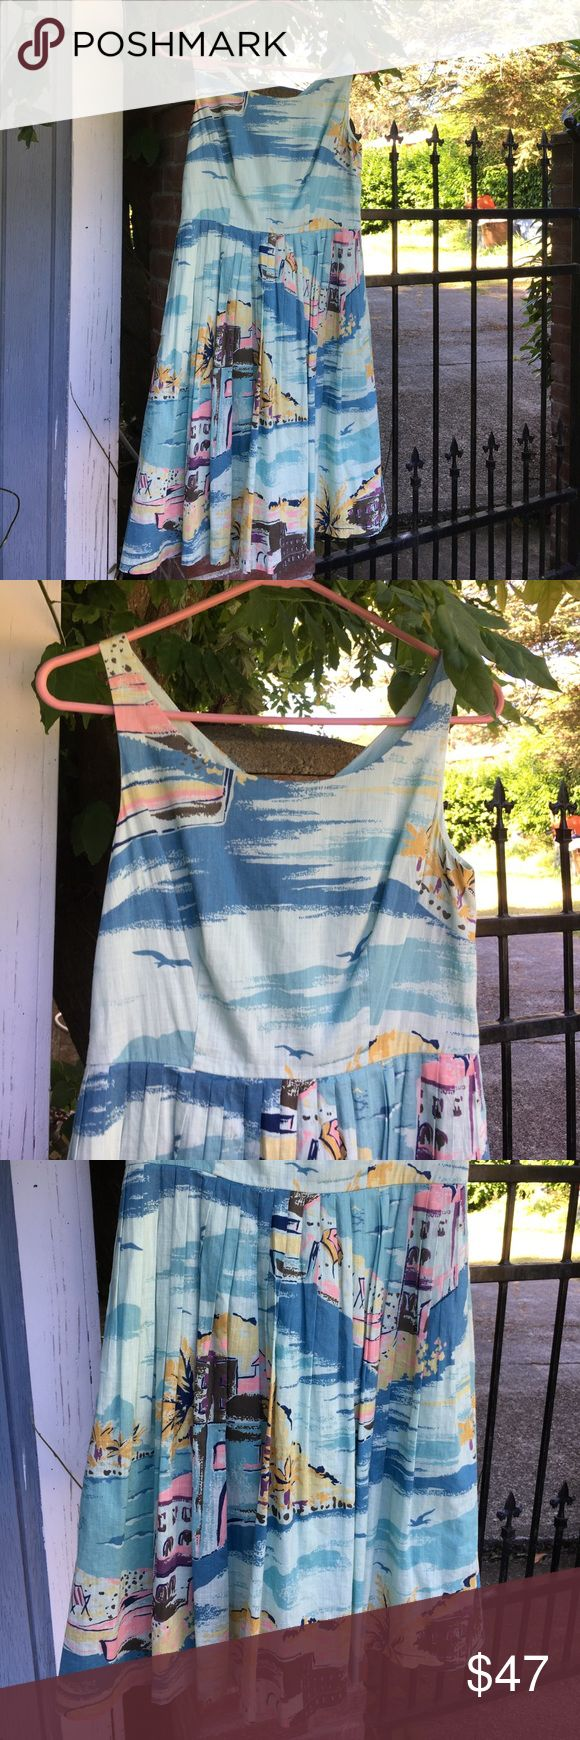 Boden summer dress, pockets! 4p 100% cotton lined retro pattern summer dress by Boden. Small pleated, teal green and blue with mustard yellow, pink and brown beach villa illustration. Side zipper. Size 4 petite. Like new. Absolutely lovely. Boden Dresses Midi